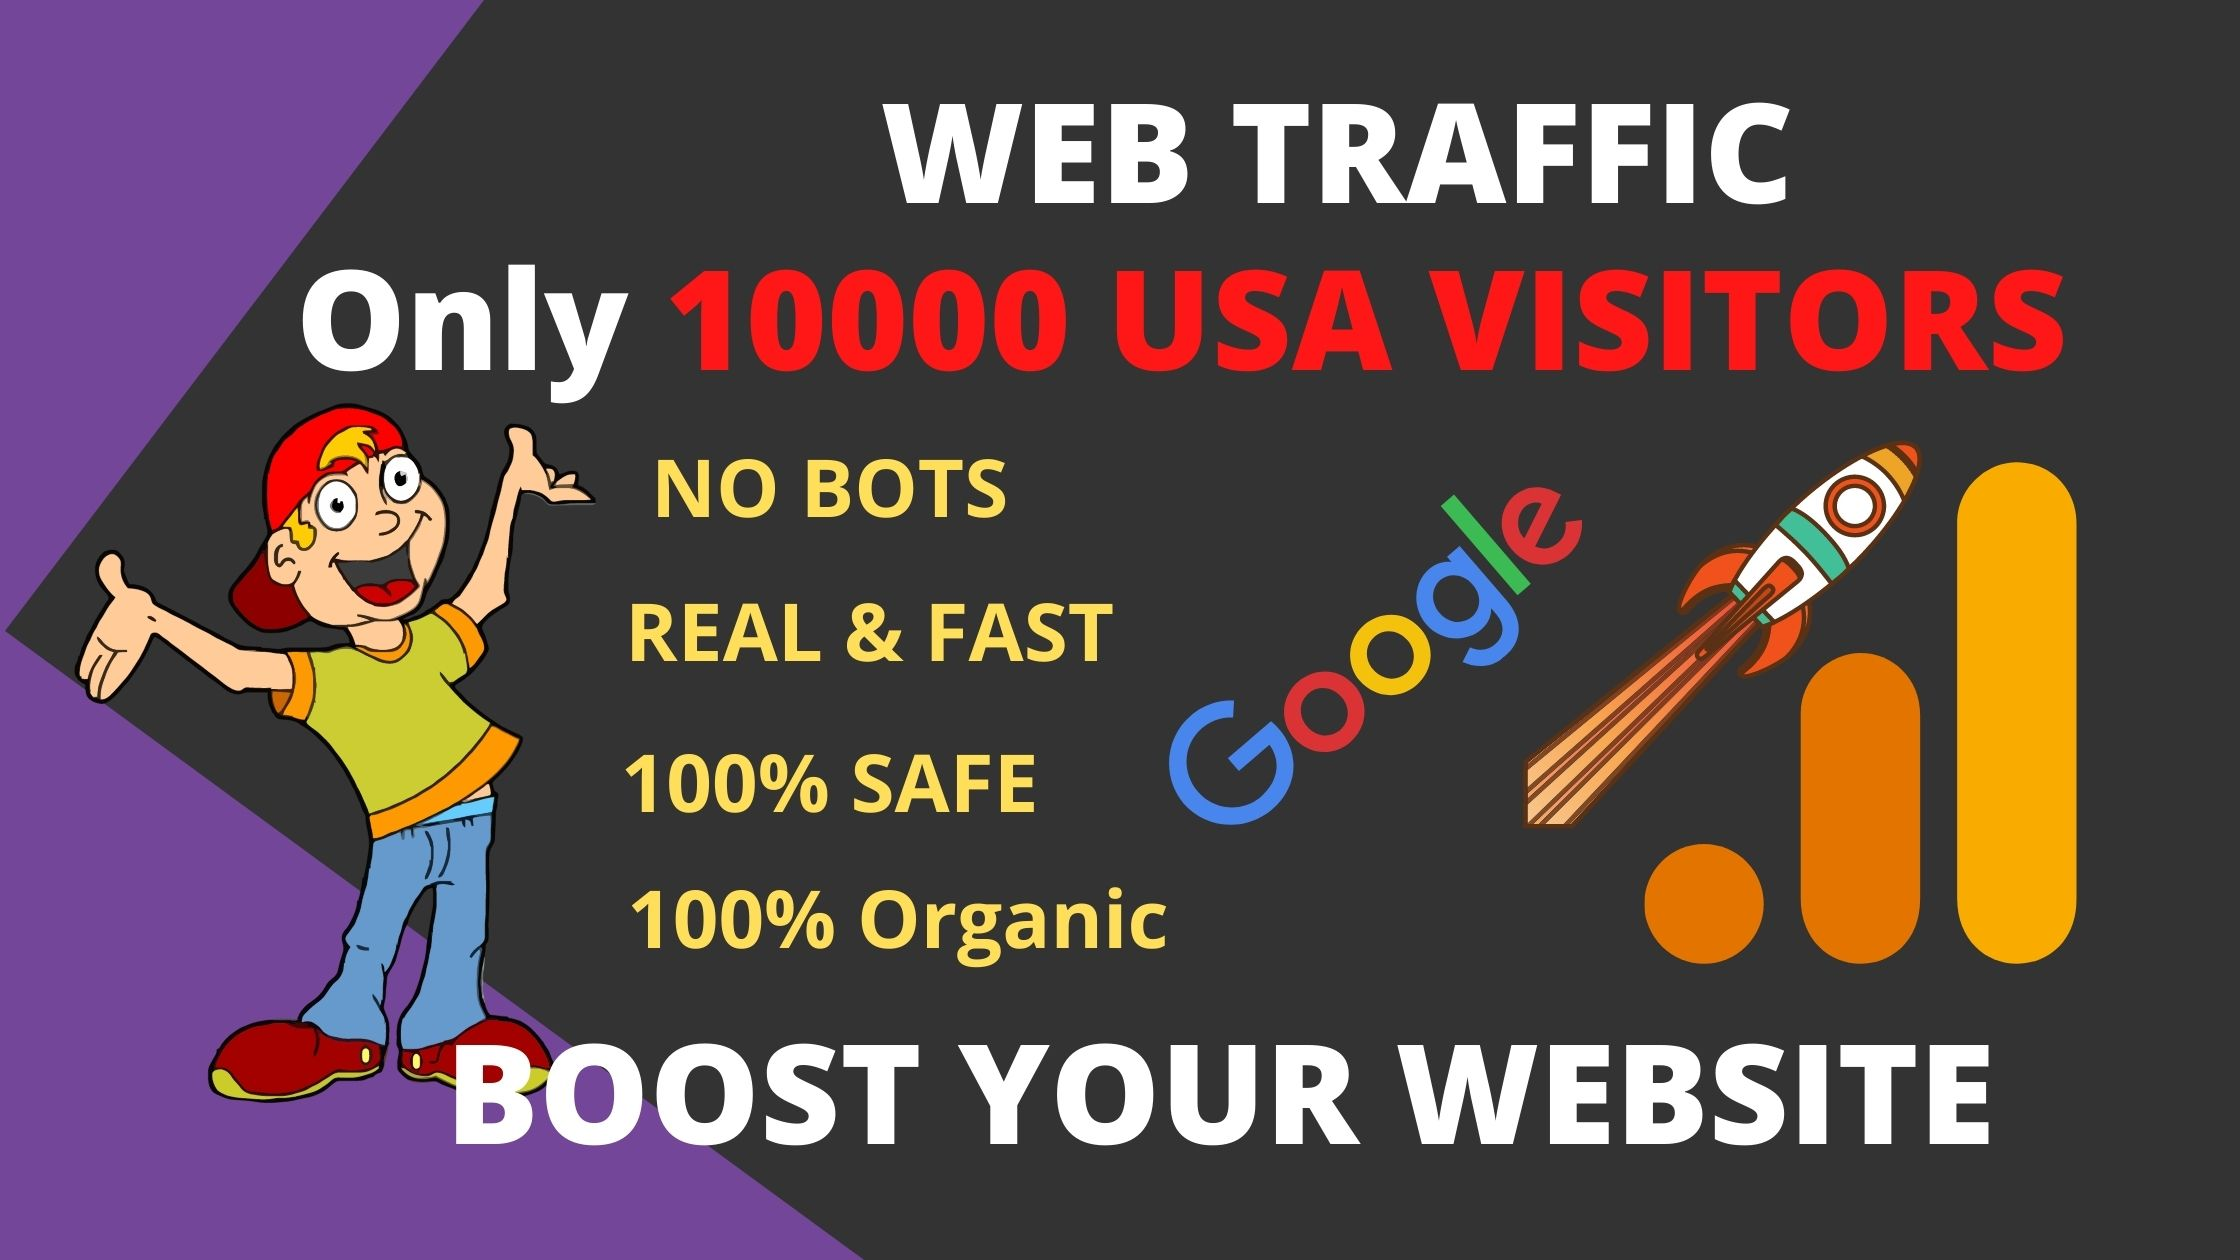 Drive nich target 10000 only USA visitors for your website